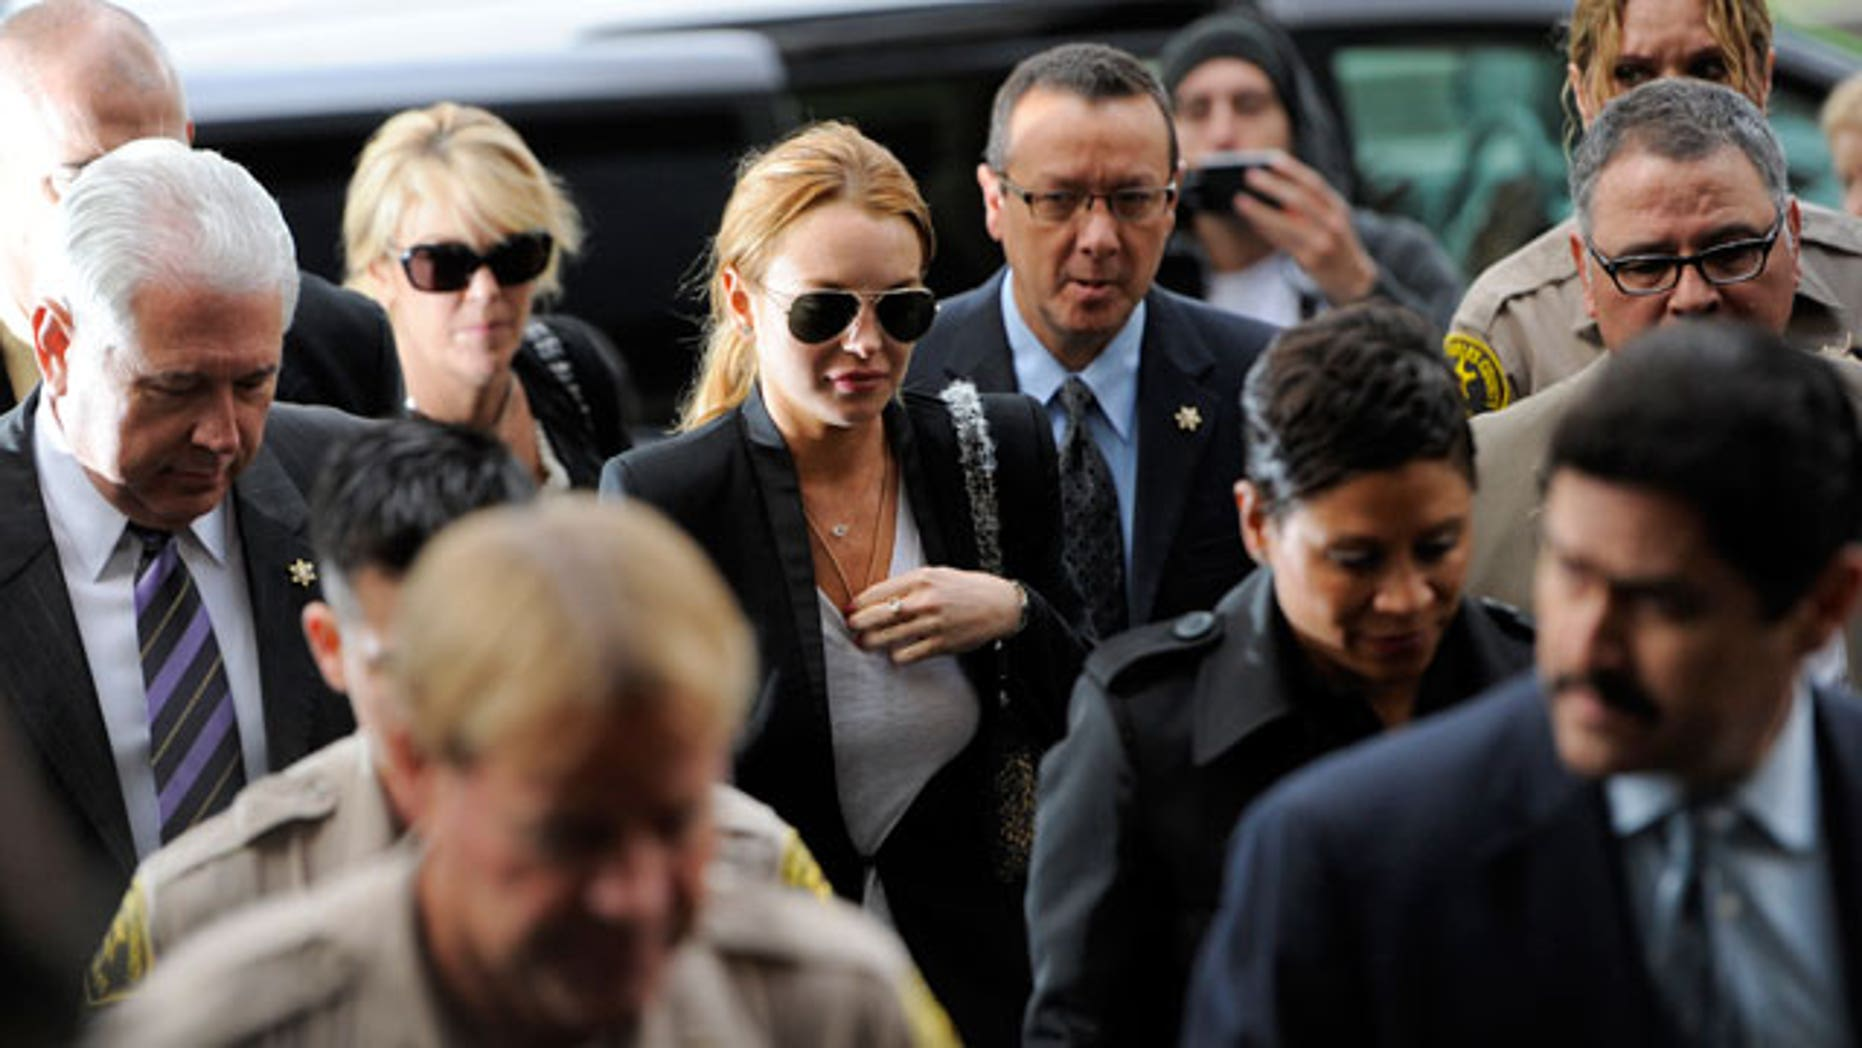 Oct. 22: Lindsay Lohan, center, arrives for a probation violation hearing at Beverly Hills Courthouse in Beverly Hills.